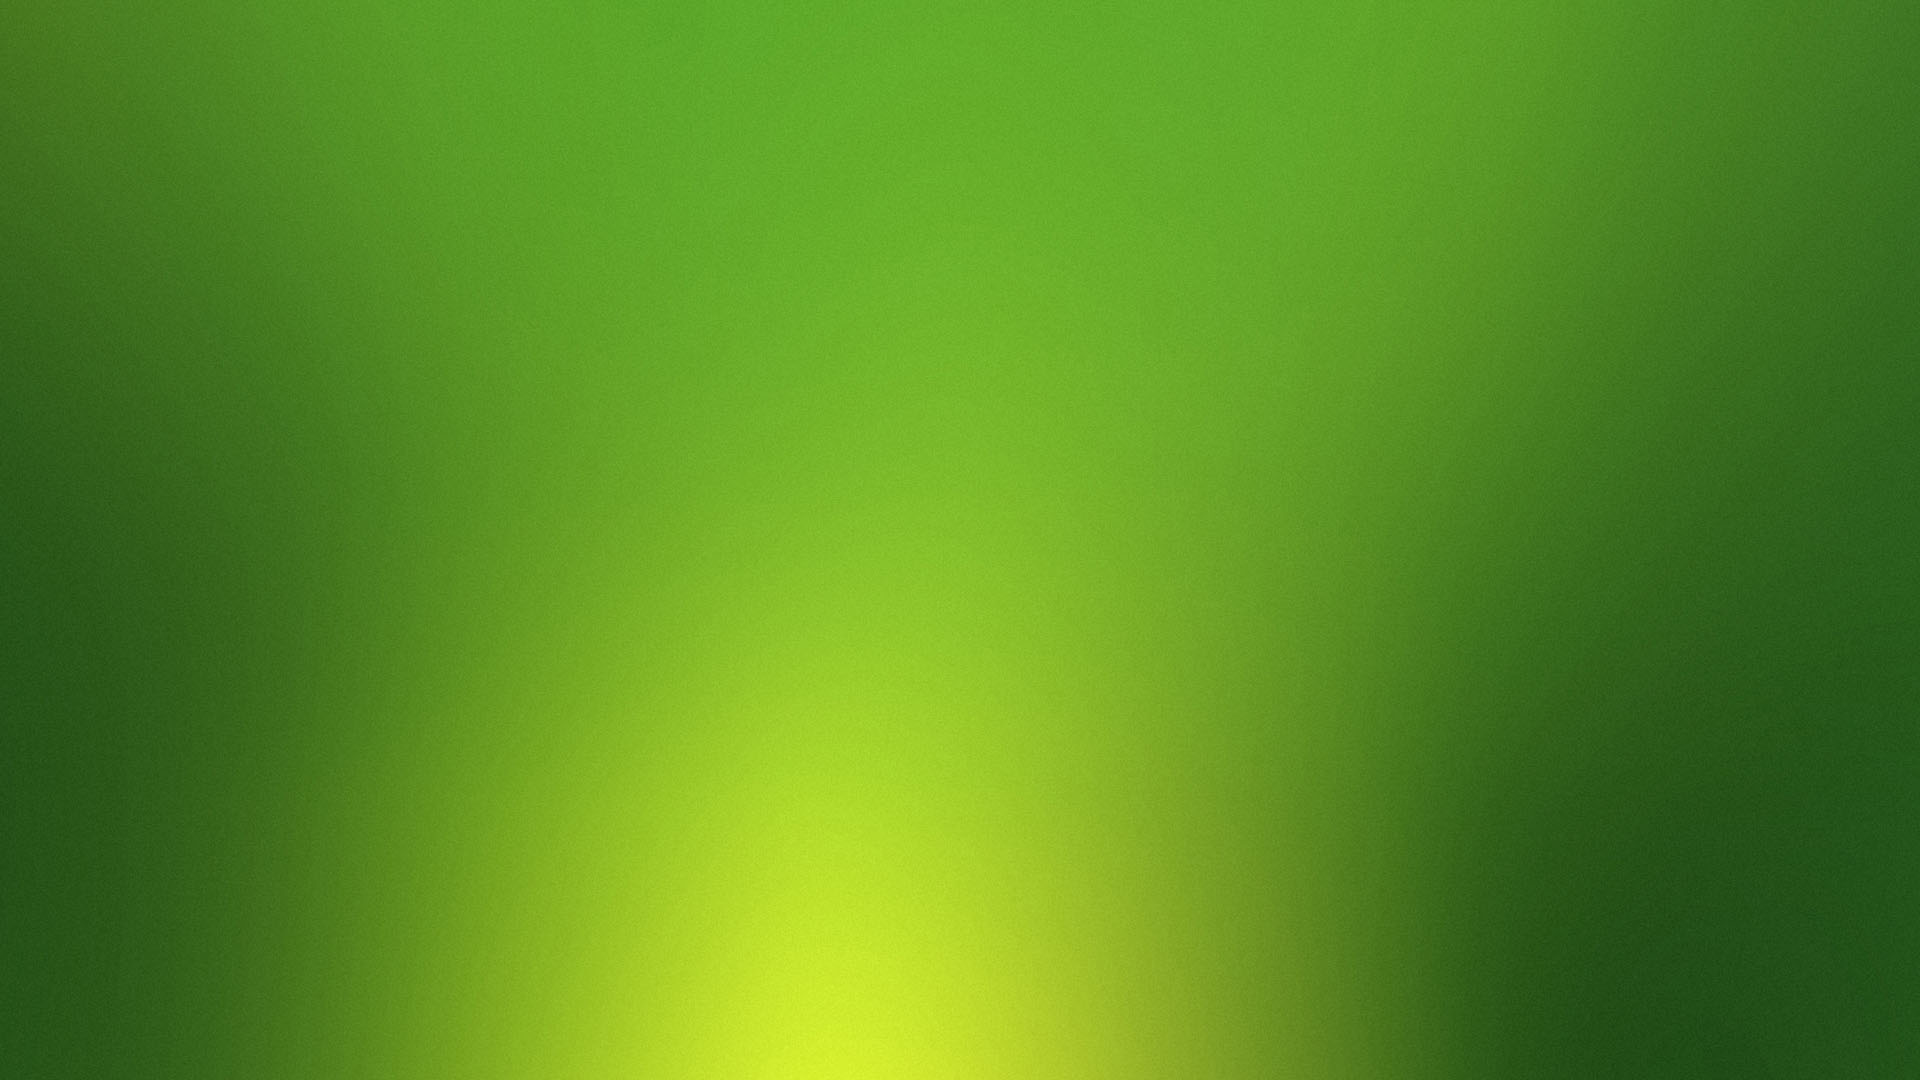 Plain Green Background